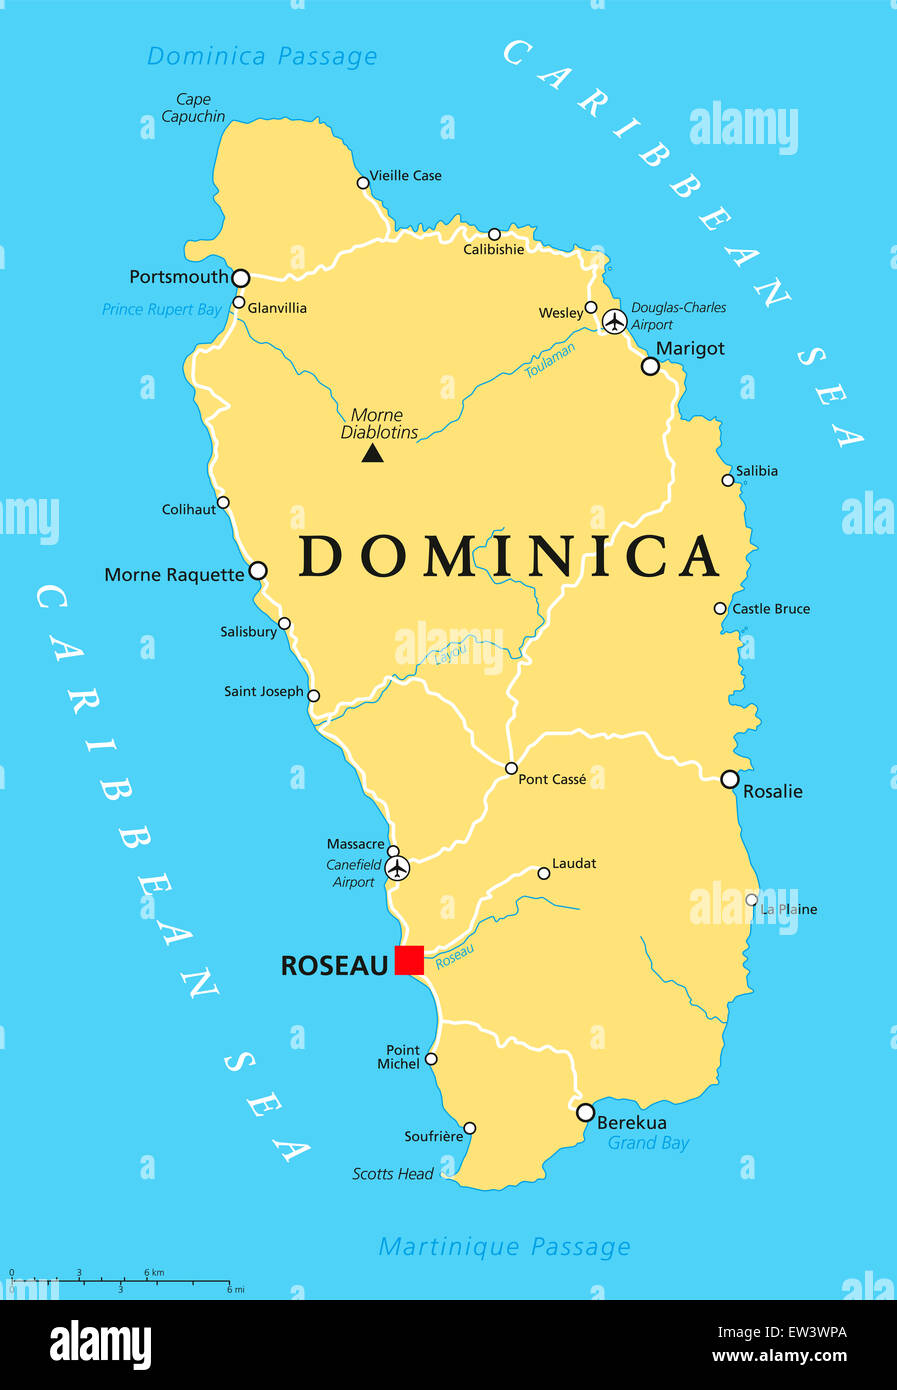 Dominica Political Map With Capital Roseau And Important Places - Dominica political map